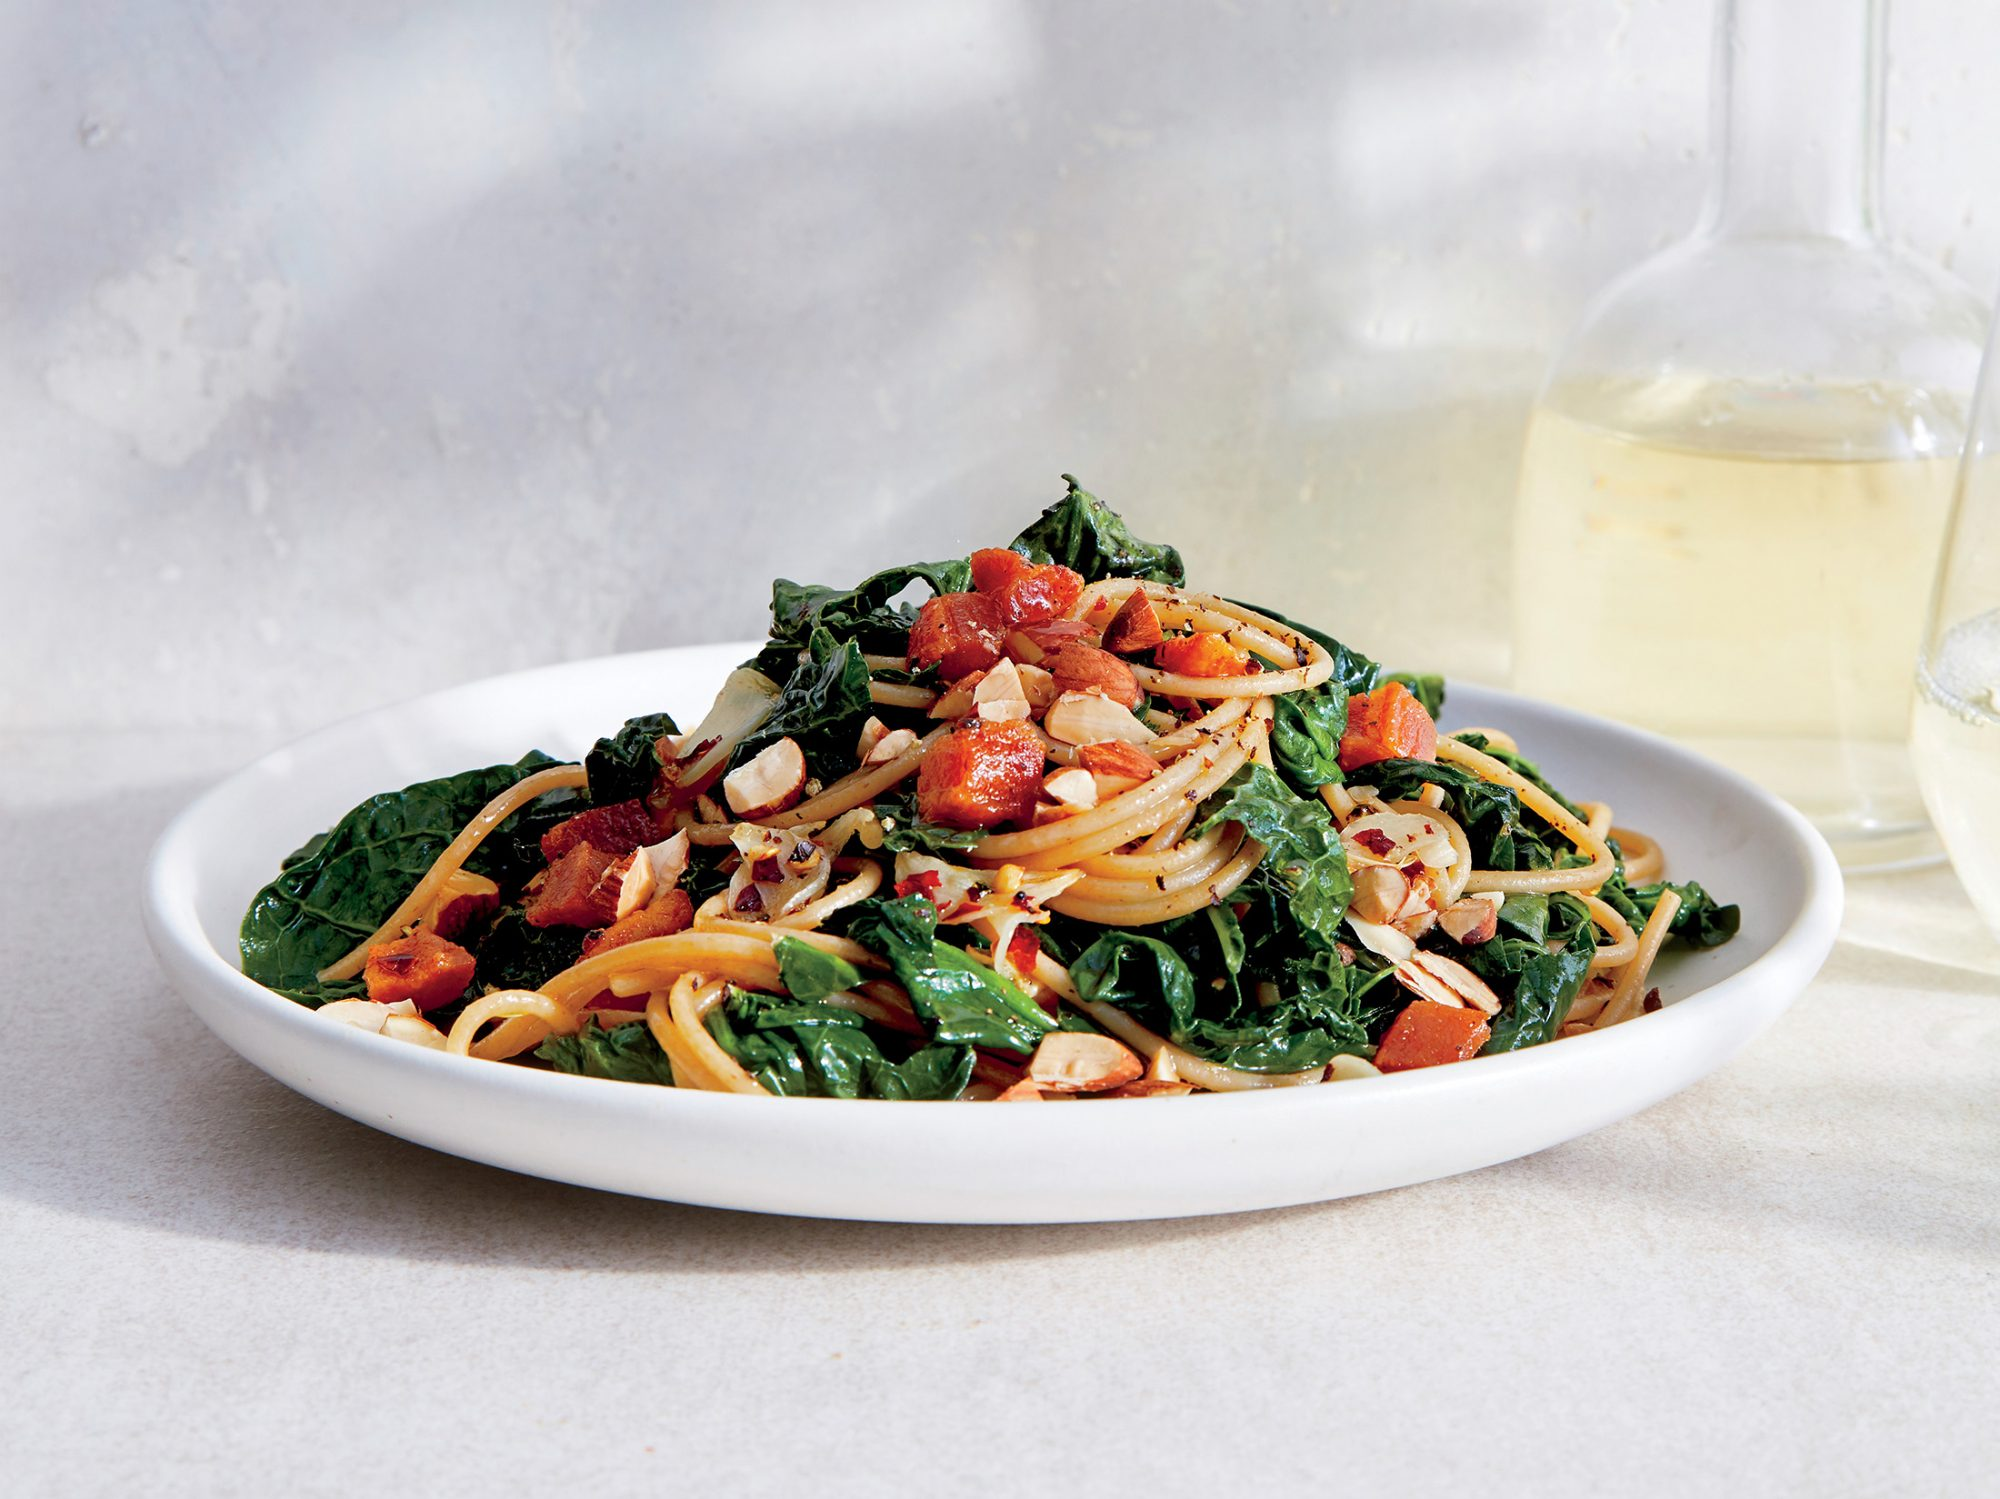 Make Garden Greens Pasta With Almonds and Pancetta in 20